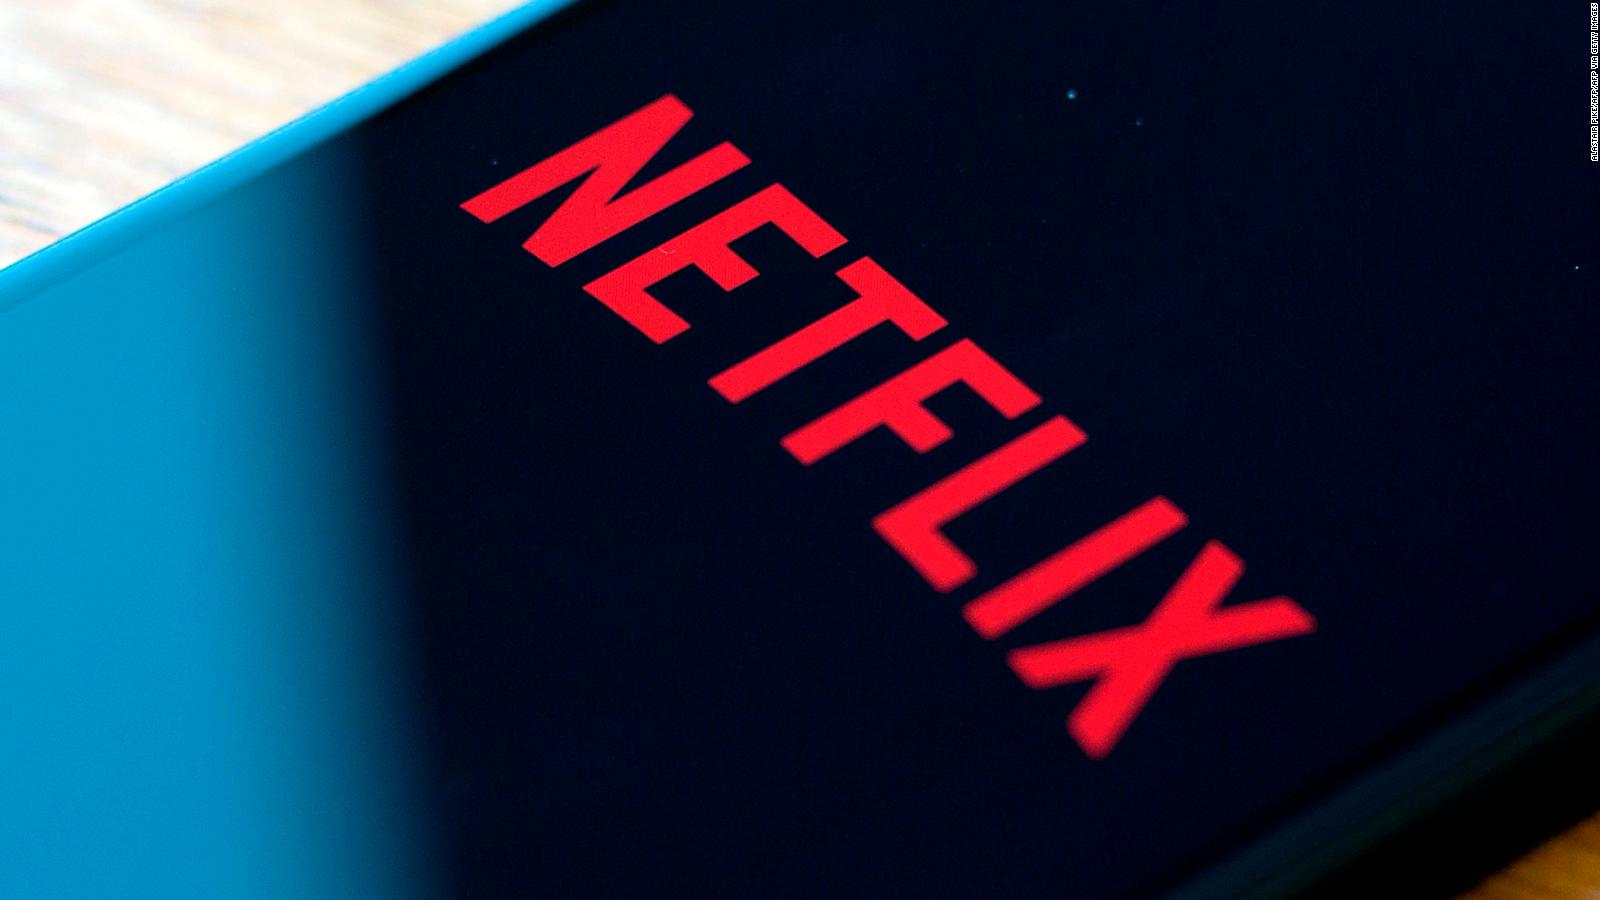 Netflix wants you to stop sharing your password and thus seeks to prevent it